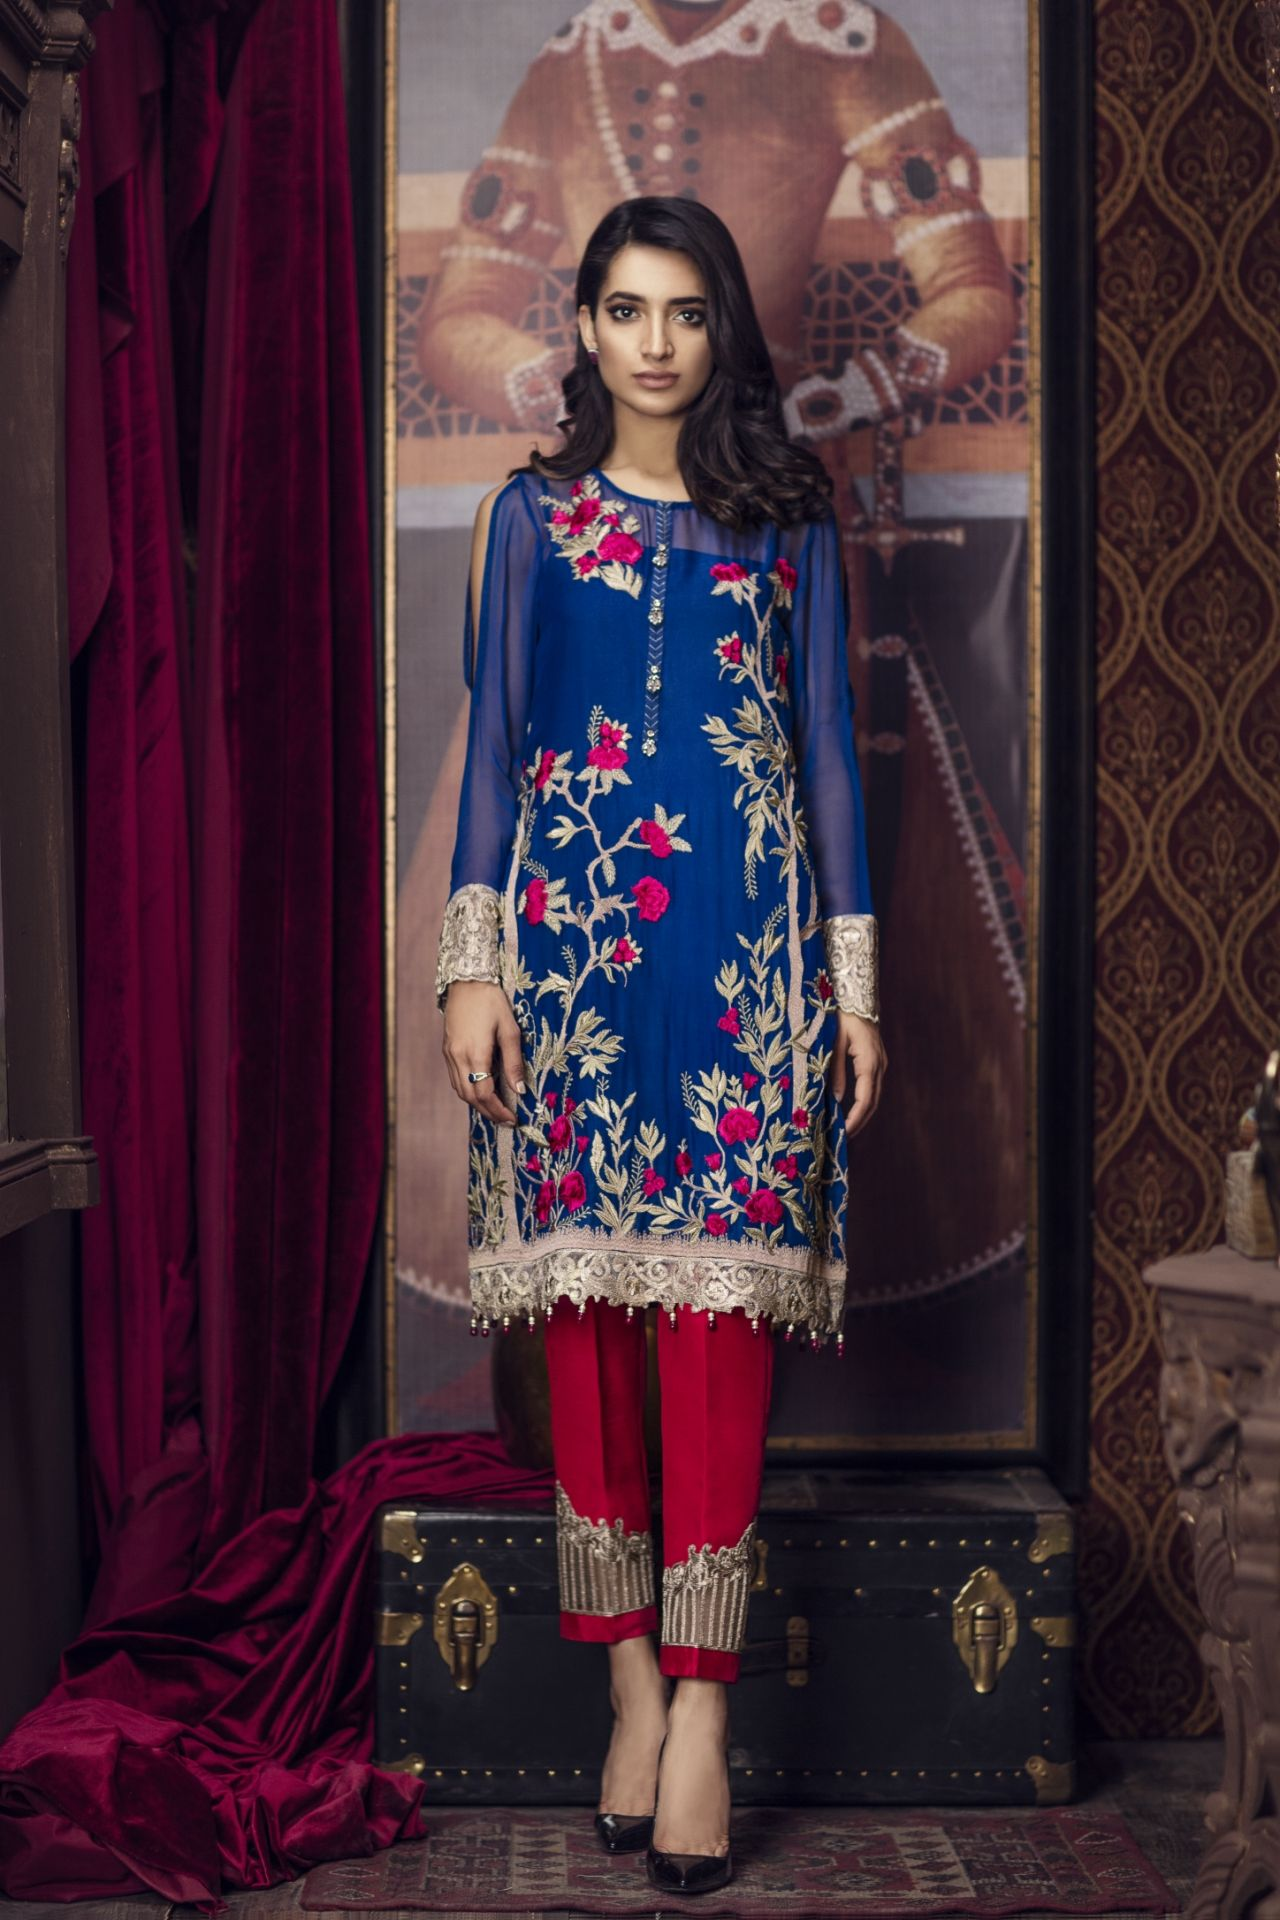 b67d0d5545d86 Ravish blue unstitched 3 piece pret dress by Imrozia Premium semi formal clothes  2018. Imrozia Premium Embroidered Chiffon Collection 2018 | PK Vogue ...